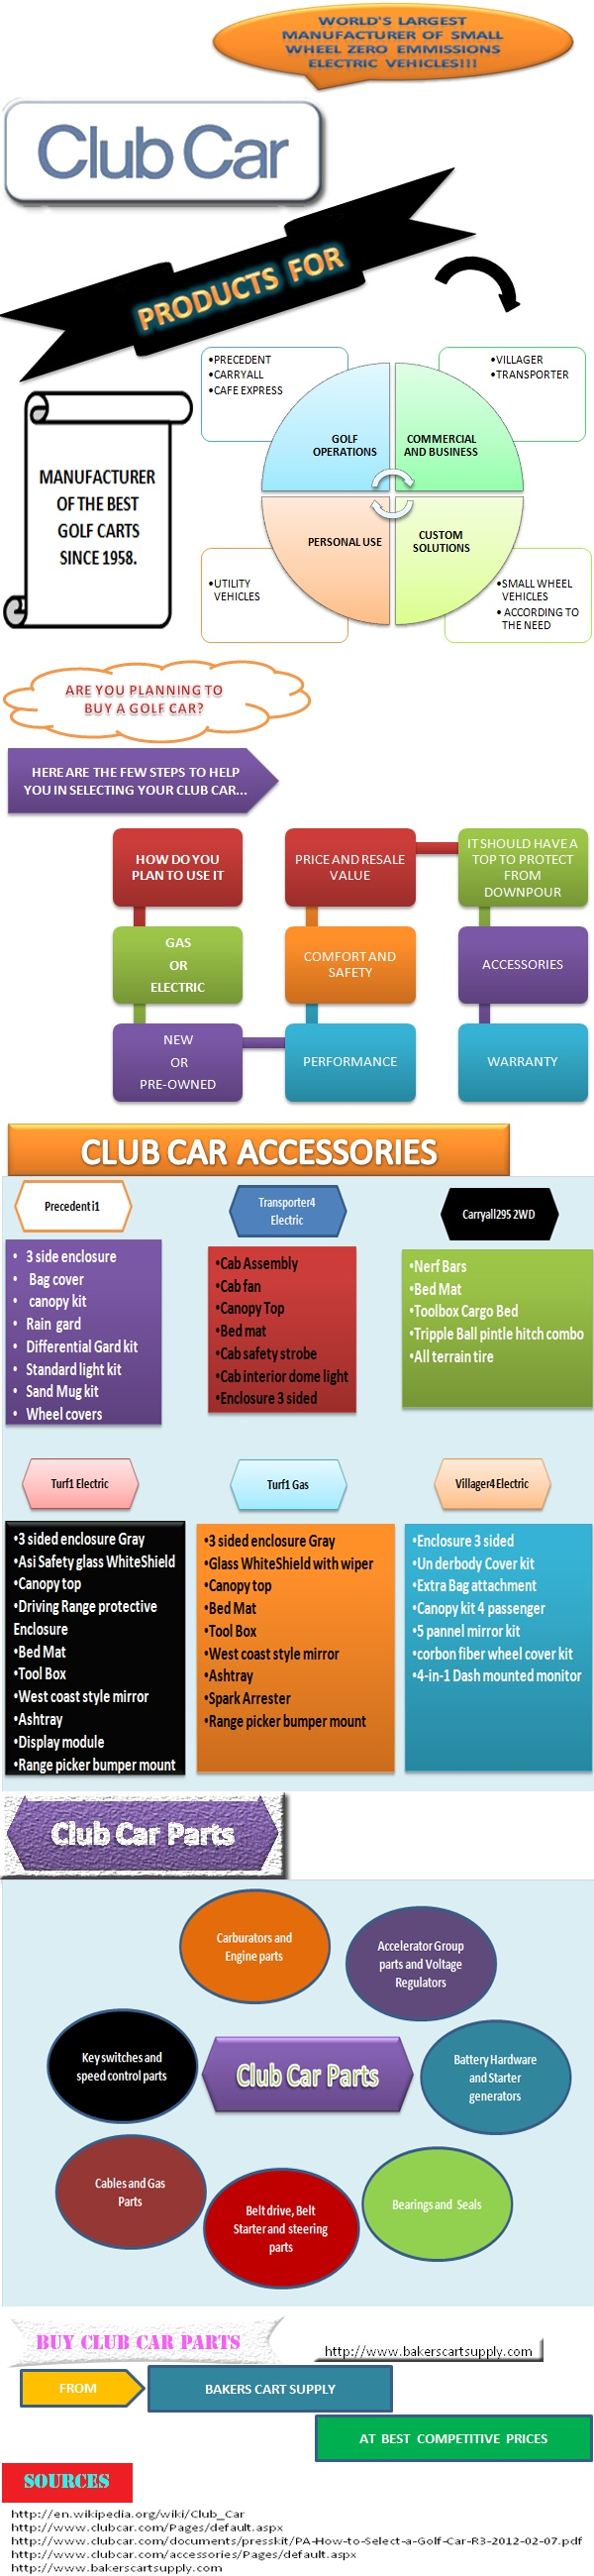 We offer golf cart parts & golf cart accessories to meet every golf cart enthusiast's needs. Our selection of brands include Club Car, EZ-GO & Yamaha golf cart parts. Visit our website for our full selection of club car parts & club car accessories.